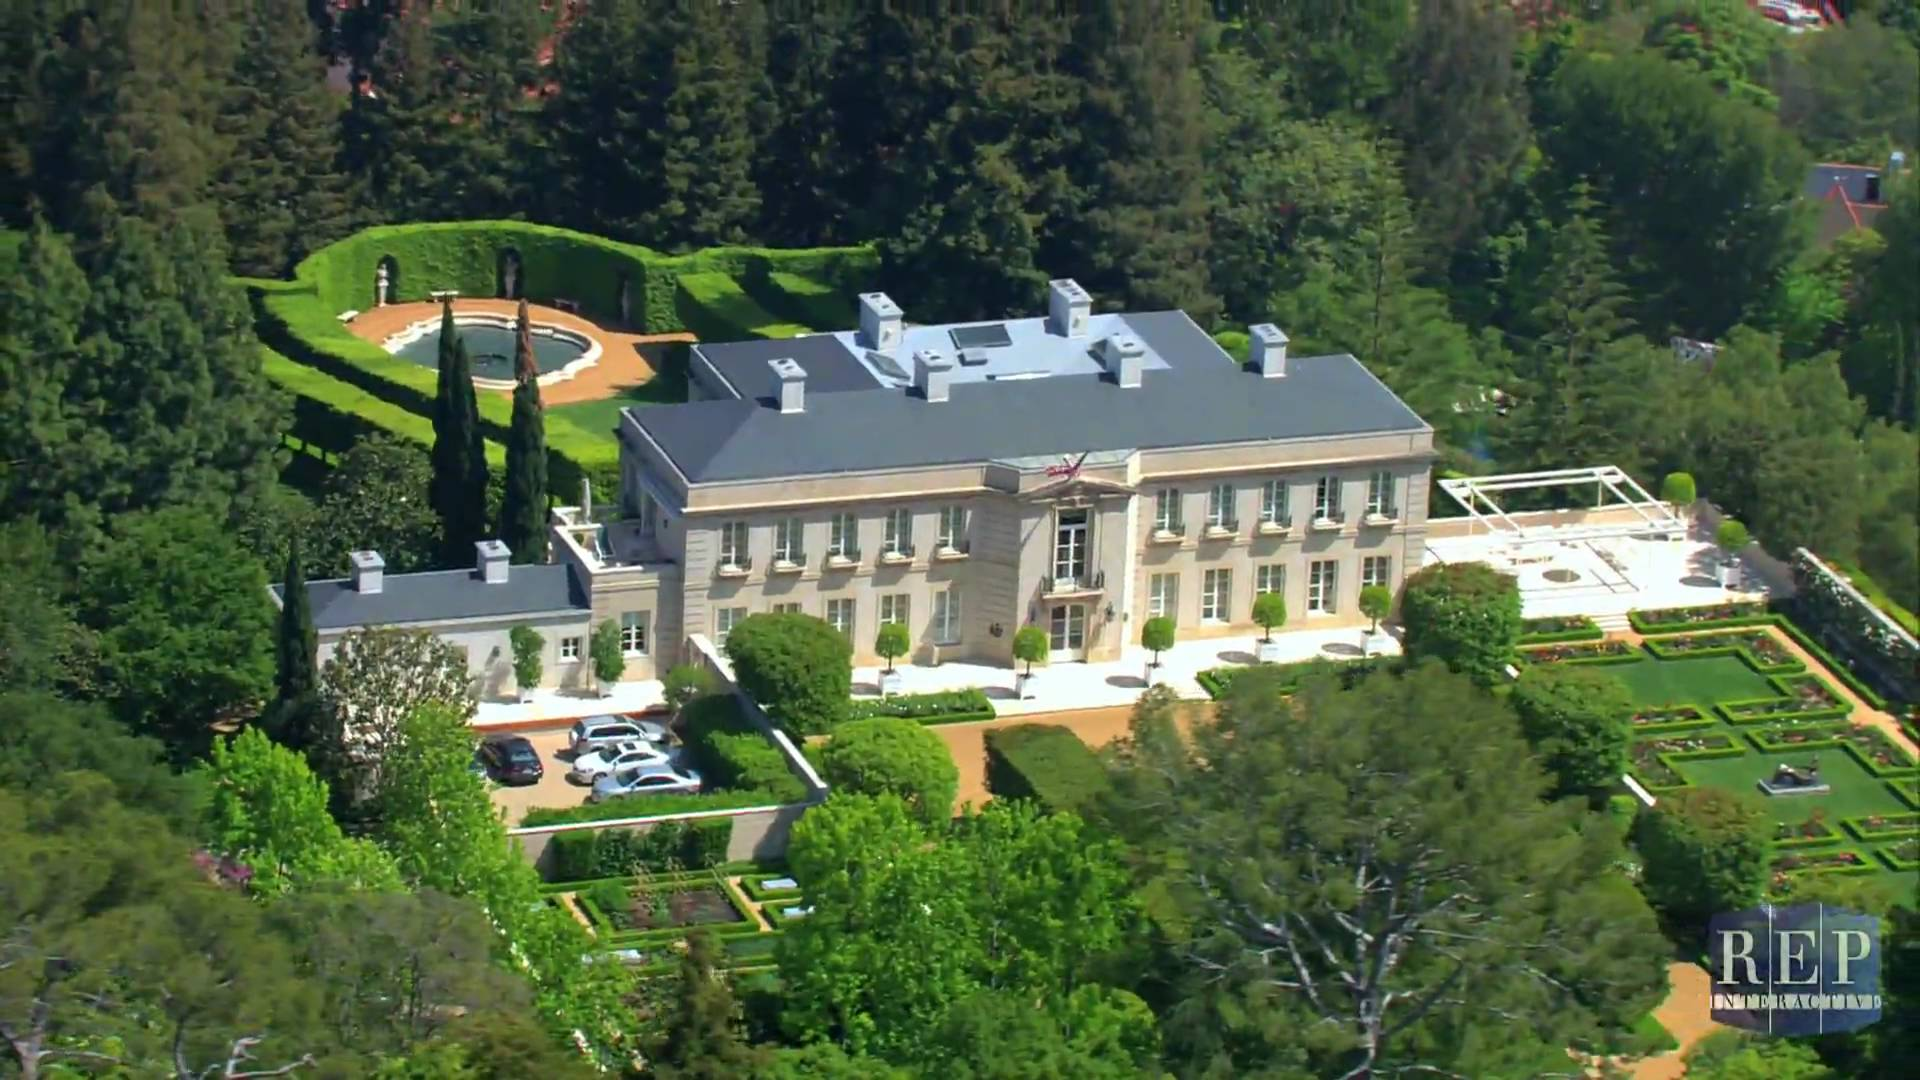 Top 10 most expensive houses in the world hd wallpapers for Most expensive houses in california